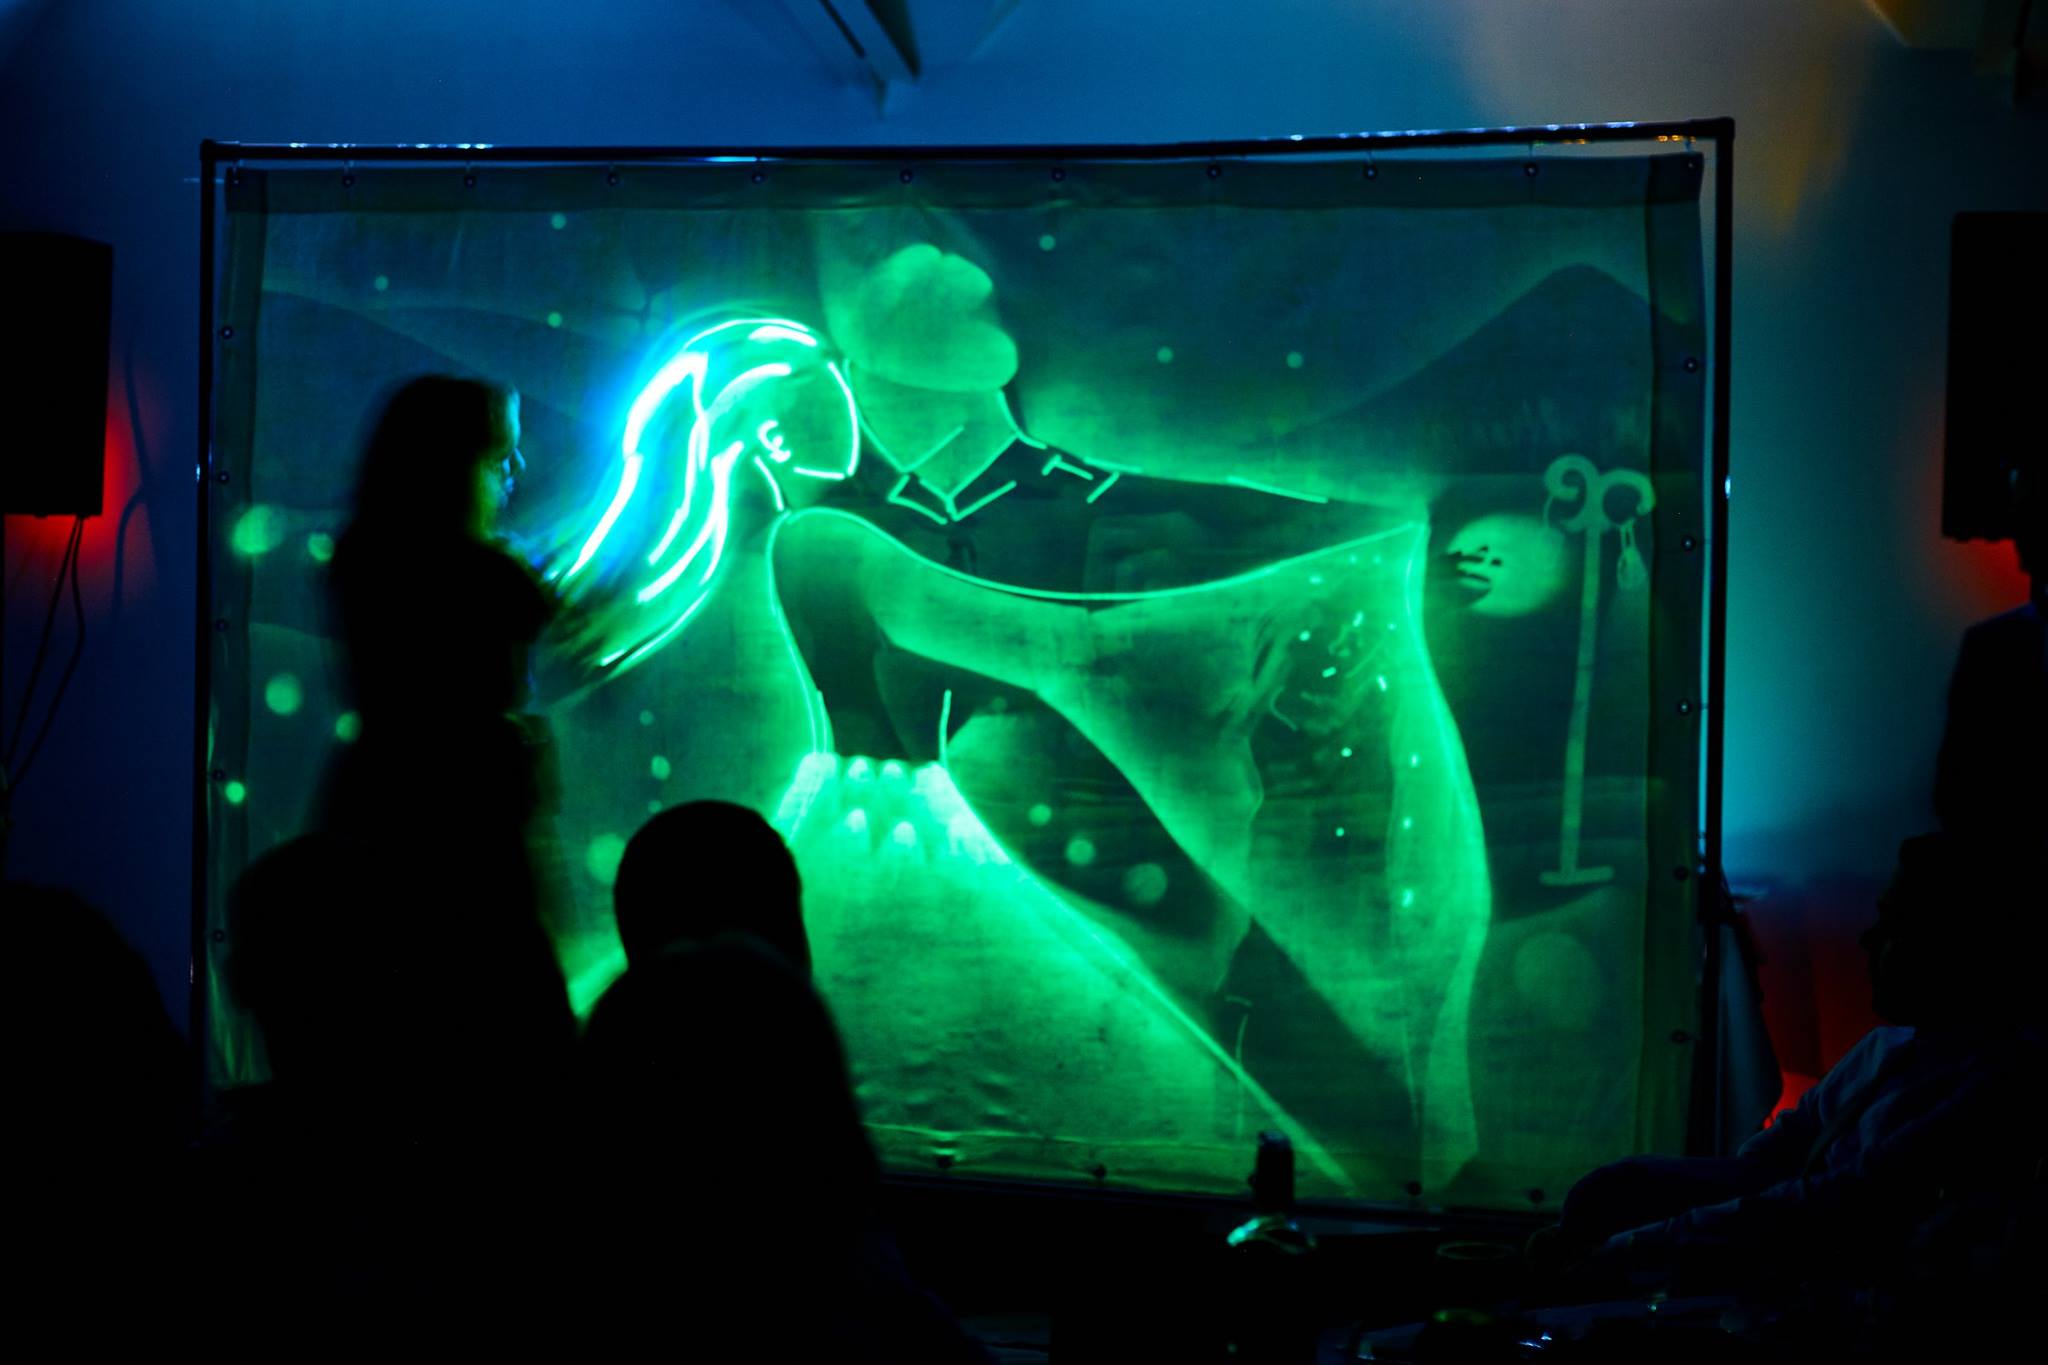 Creative-art-neon-light-entertainer-for-events